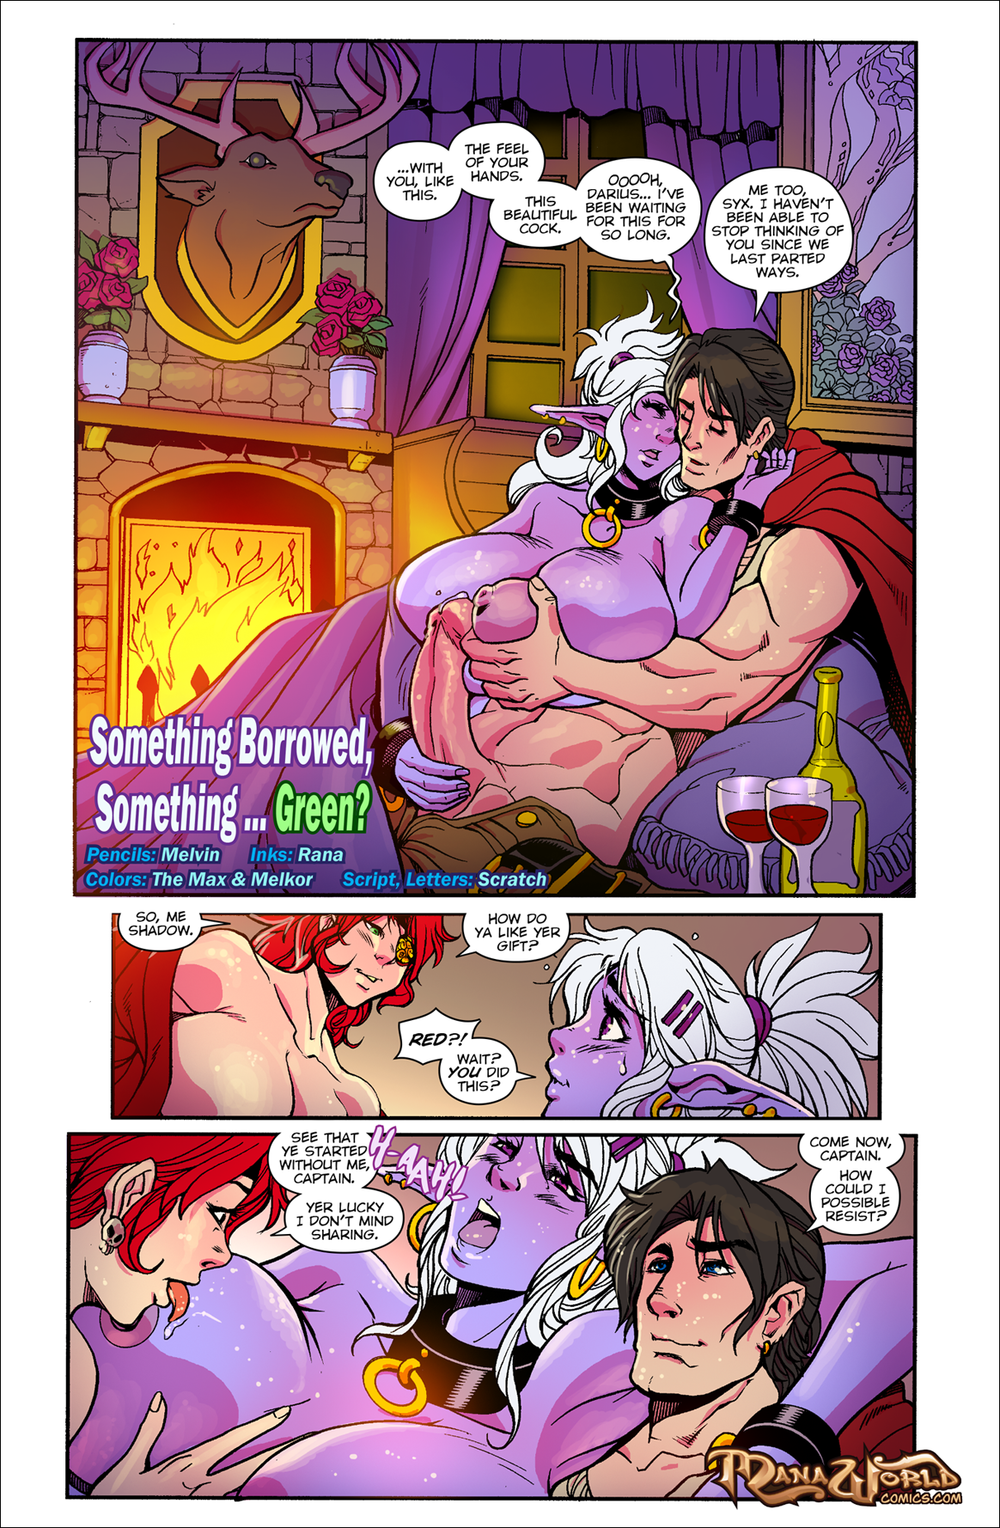 ManaWorldComics ? Chapter 17 ? Something Borrowed, Something Green